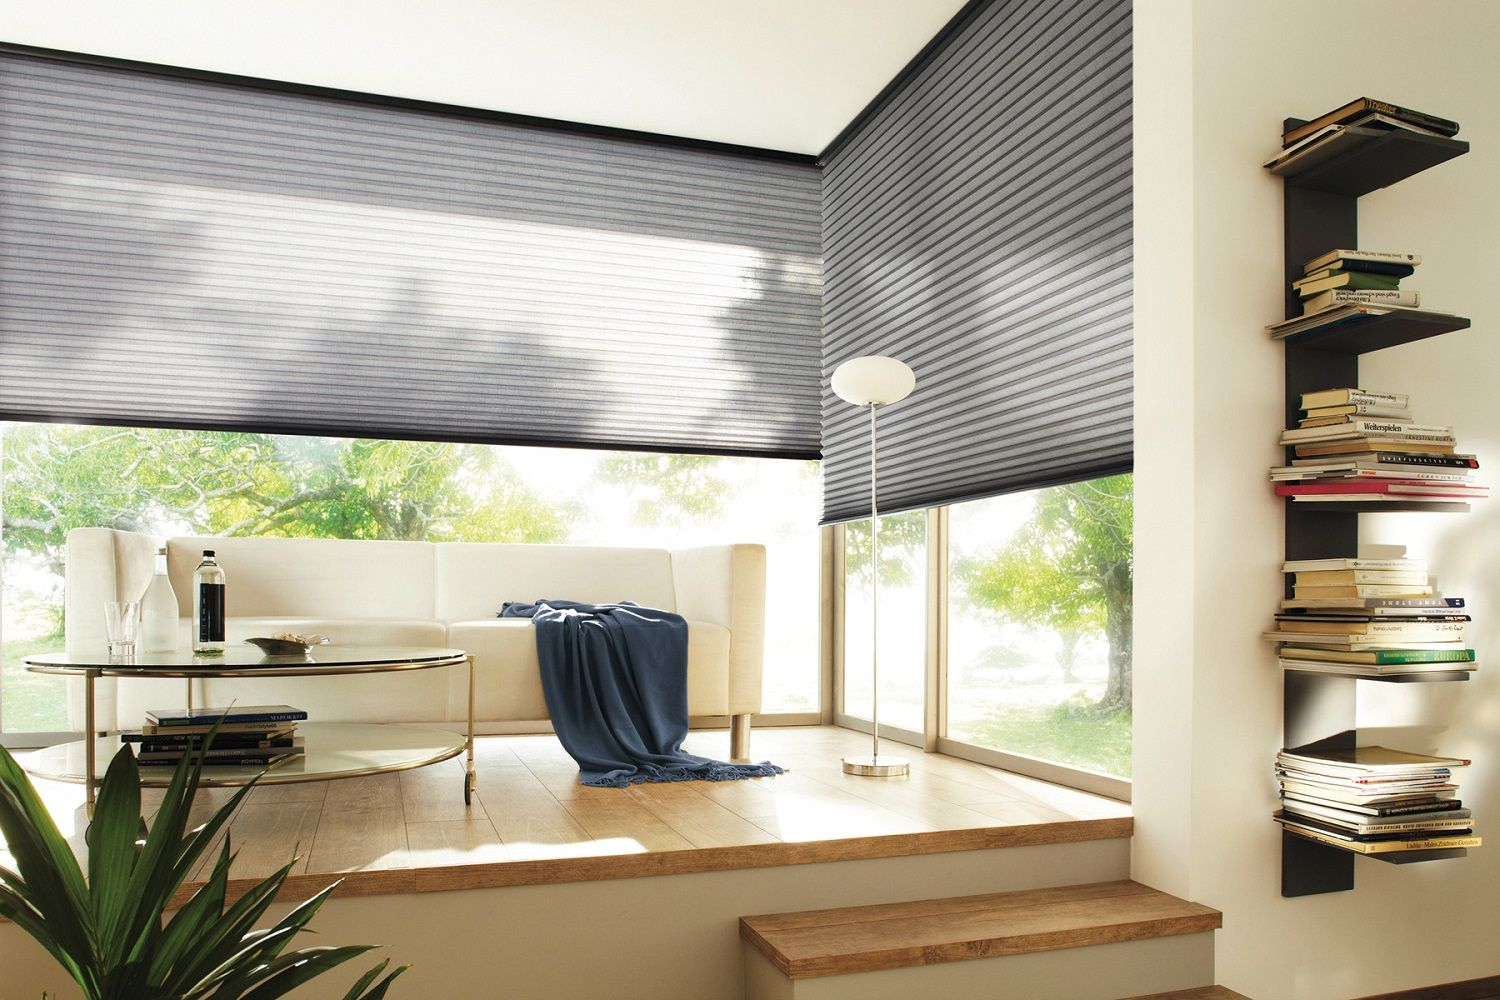 Grey Duette living room blinds. Contemporary soft grey colour ...